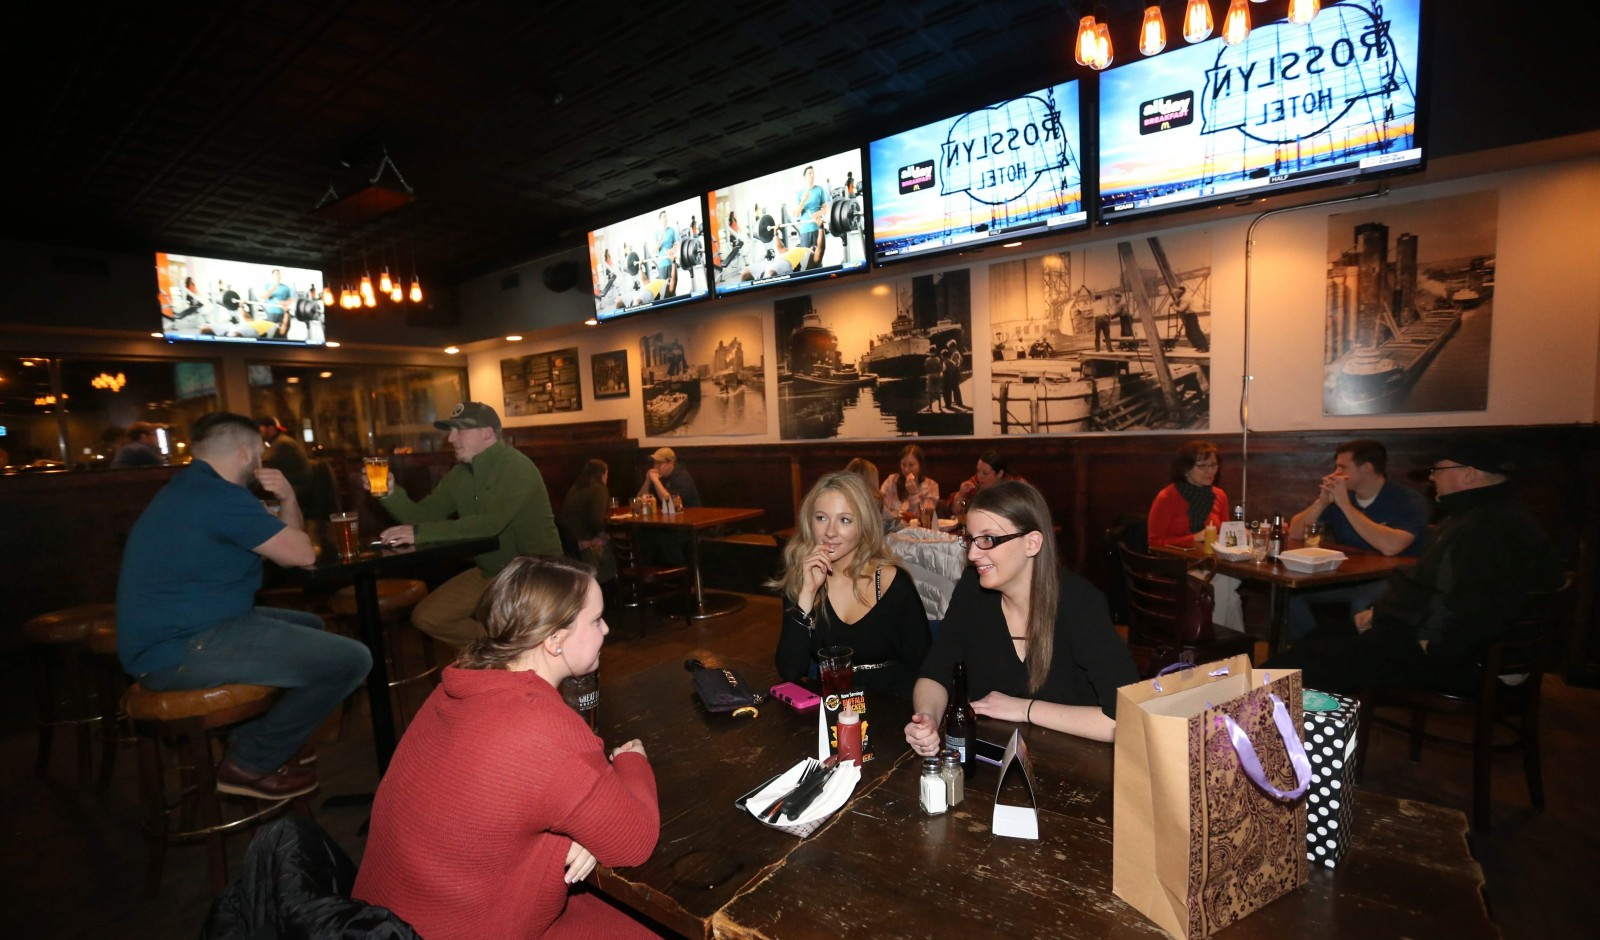 From left, Emily Adams and Natalie Ristine, both of Hamburg, and Lisa Panek of South Buffalo, celebrate Panek's birthday at Doc Sullivan's.